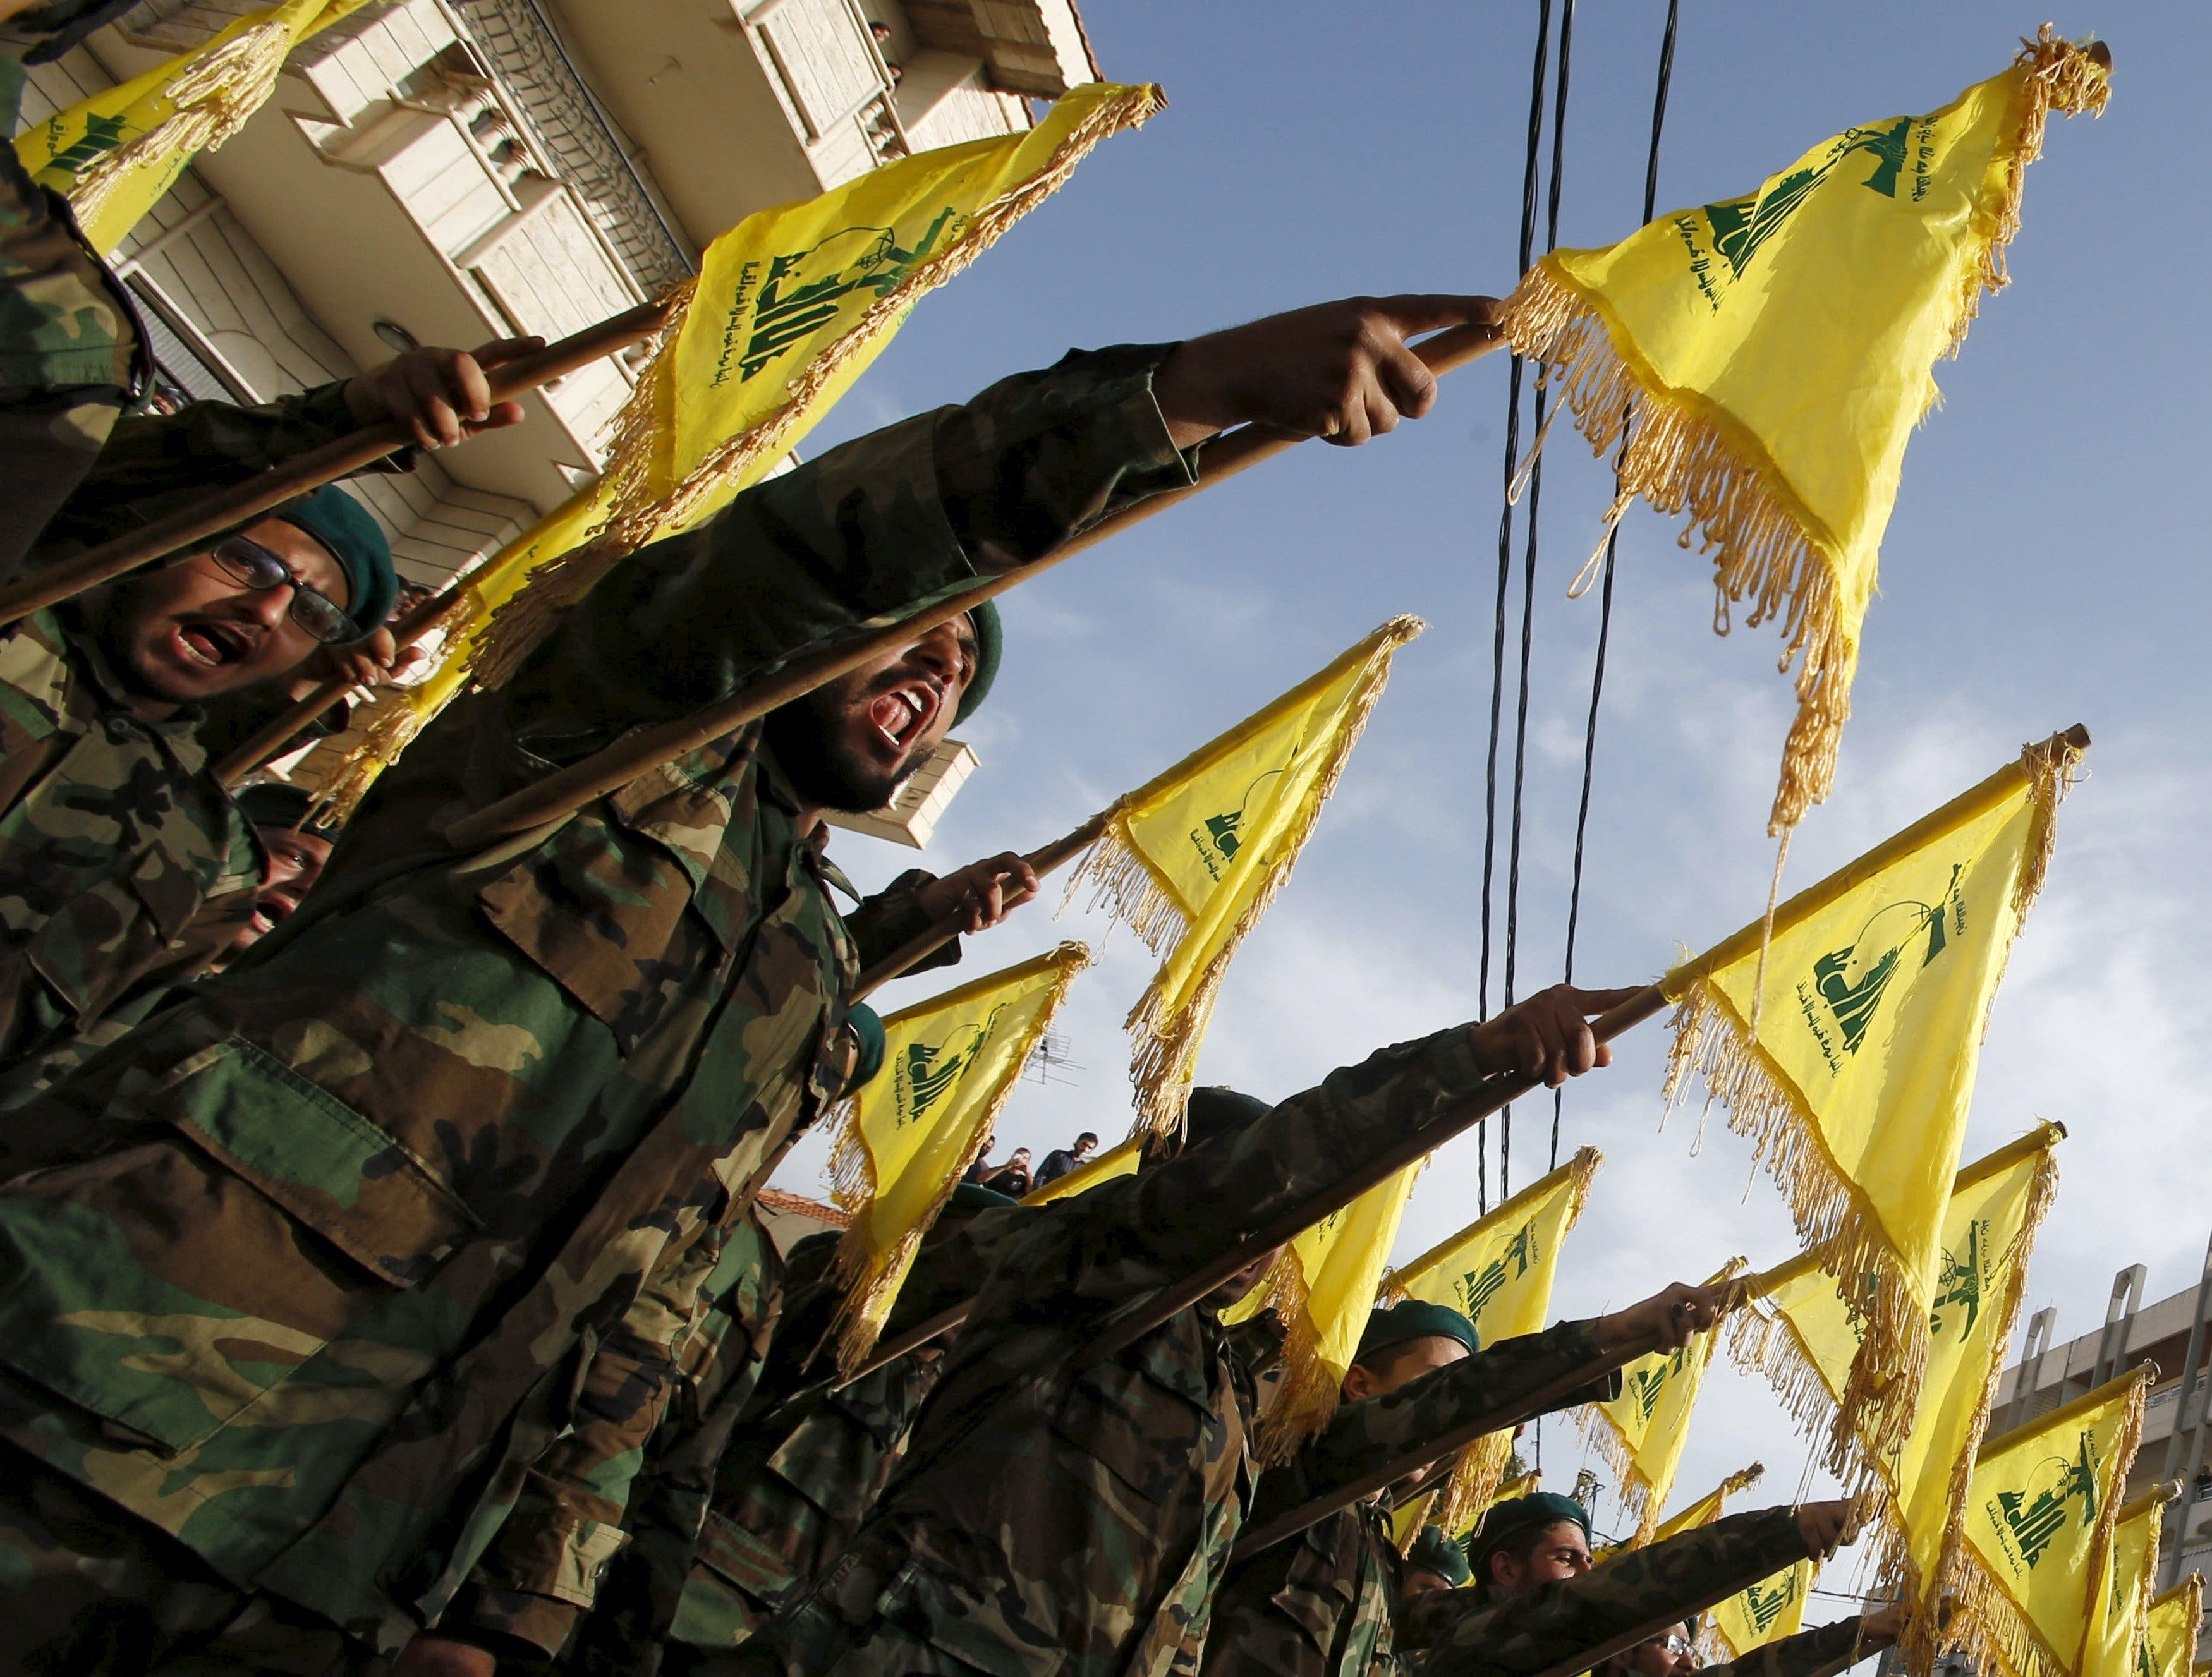 Lebanon's Hezbollah members carry Hezbollah flags during the funeral of their fellow fighter Adnan Siblini, who was killed while fighting against insurgents in the Qalamoun region, in al-Ghaziyeh village, southern Lebanon May 26, 2015. Hezbollah is fighting across all of Syria alongside the army of Syria's President Bashar al-Assad and is willing to increase its presence there when needed, the leader of the Lebanese Shi'ite movement said on Sunday. REUTERS/Ali Hashisho